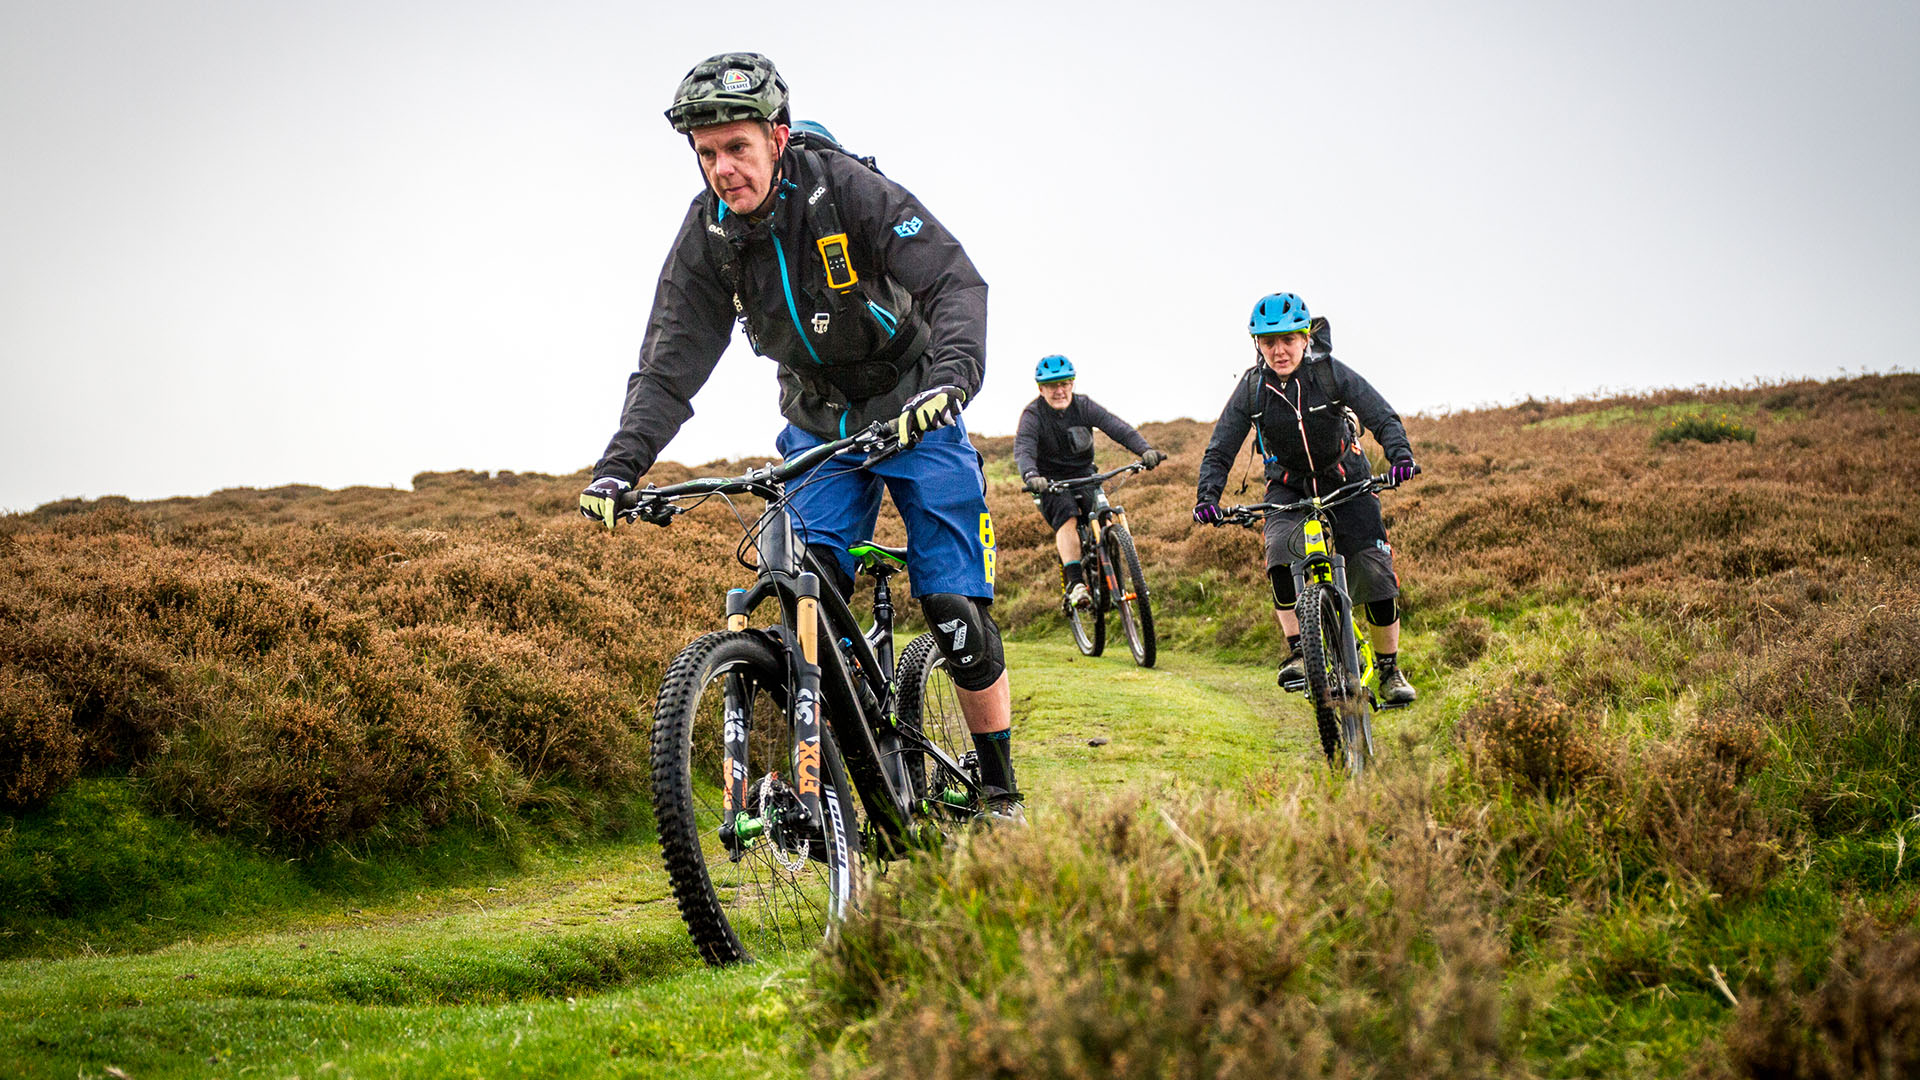 +3 MTB Coach Sandy Plenty leads a group to some great natural trails during a coaching day on the Long Mynd in Shropshire